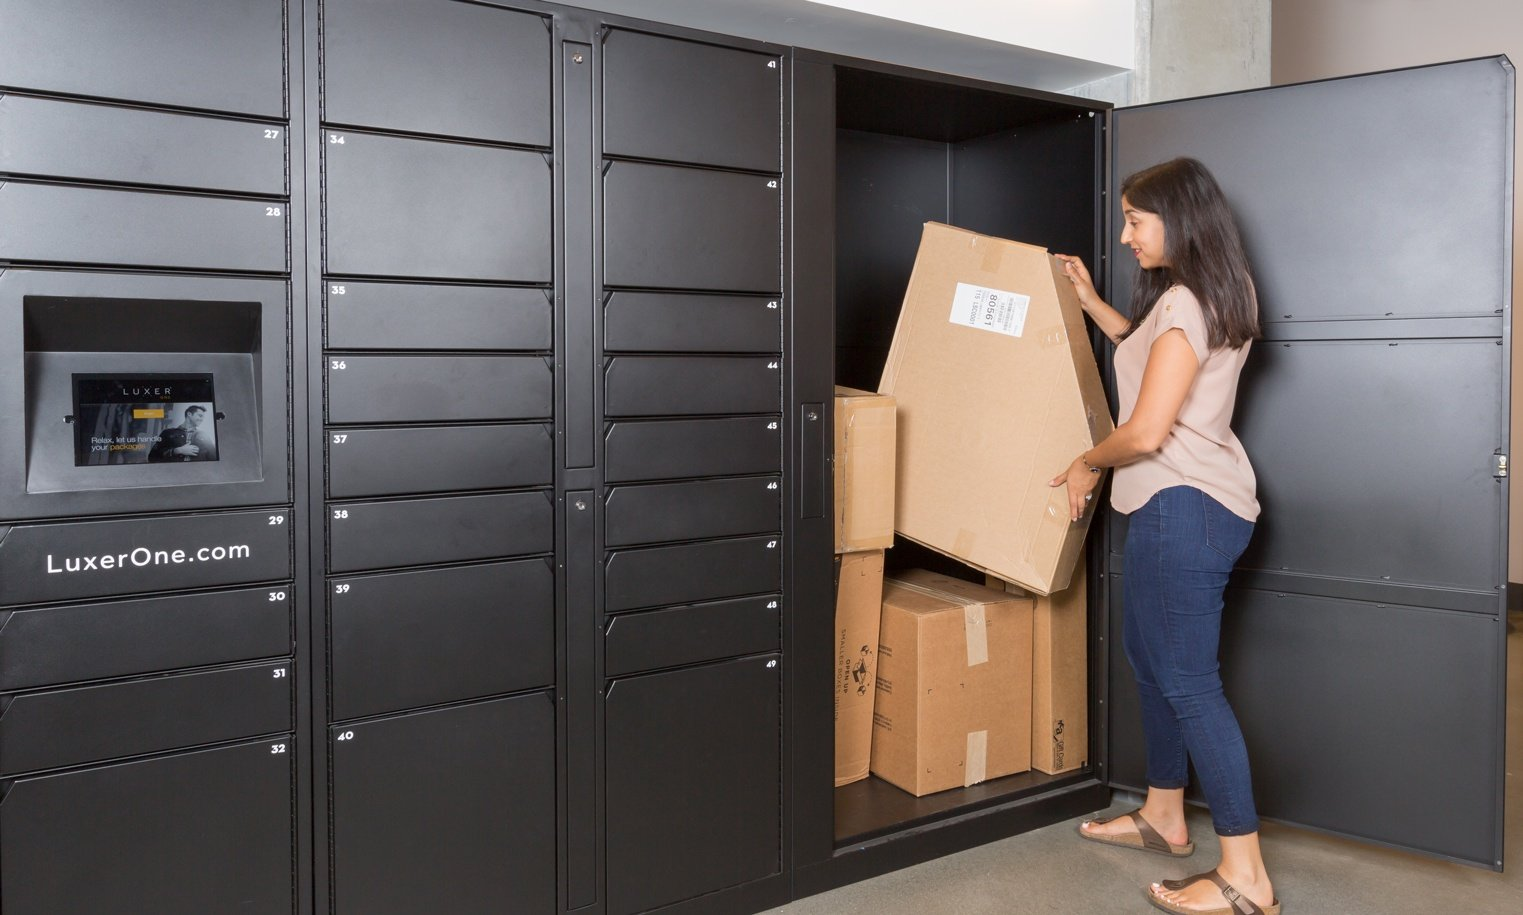 A woman collects an extra-large package from the Luxer Oversized Locker.